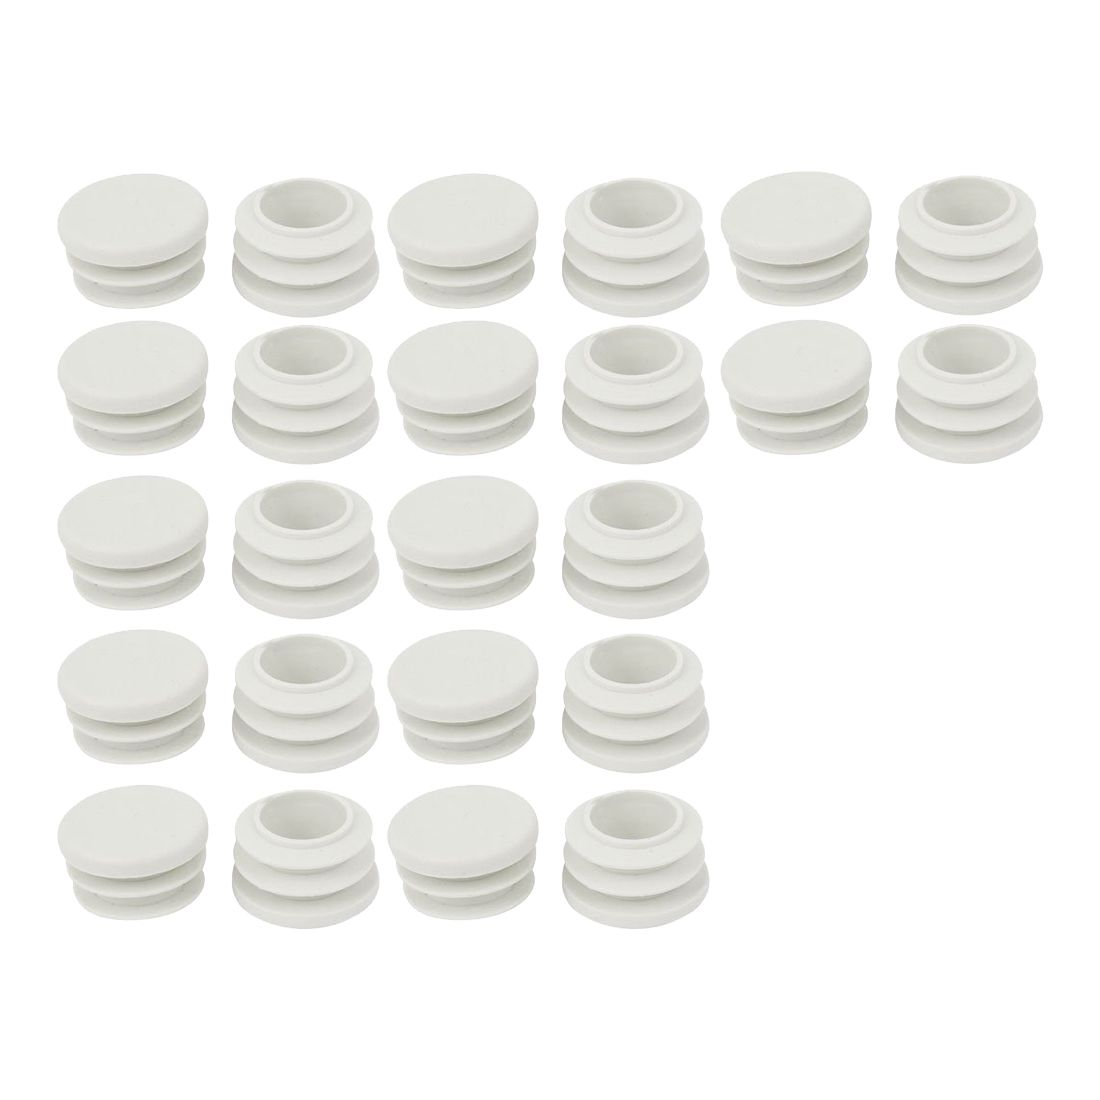 18mm Diameter Plastic White Plug Caps Inserts For Tubes Cap 24 Pieces18mm Diameter Plastic White Plug Caps Inserts For Tubes Cap 24 Pieces